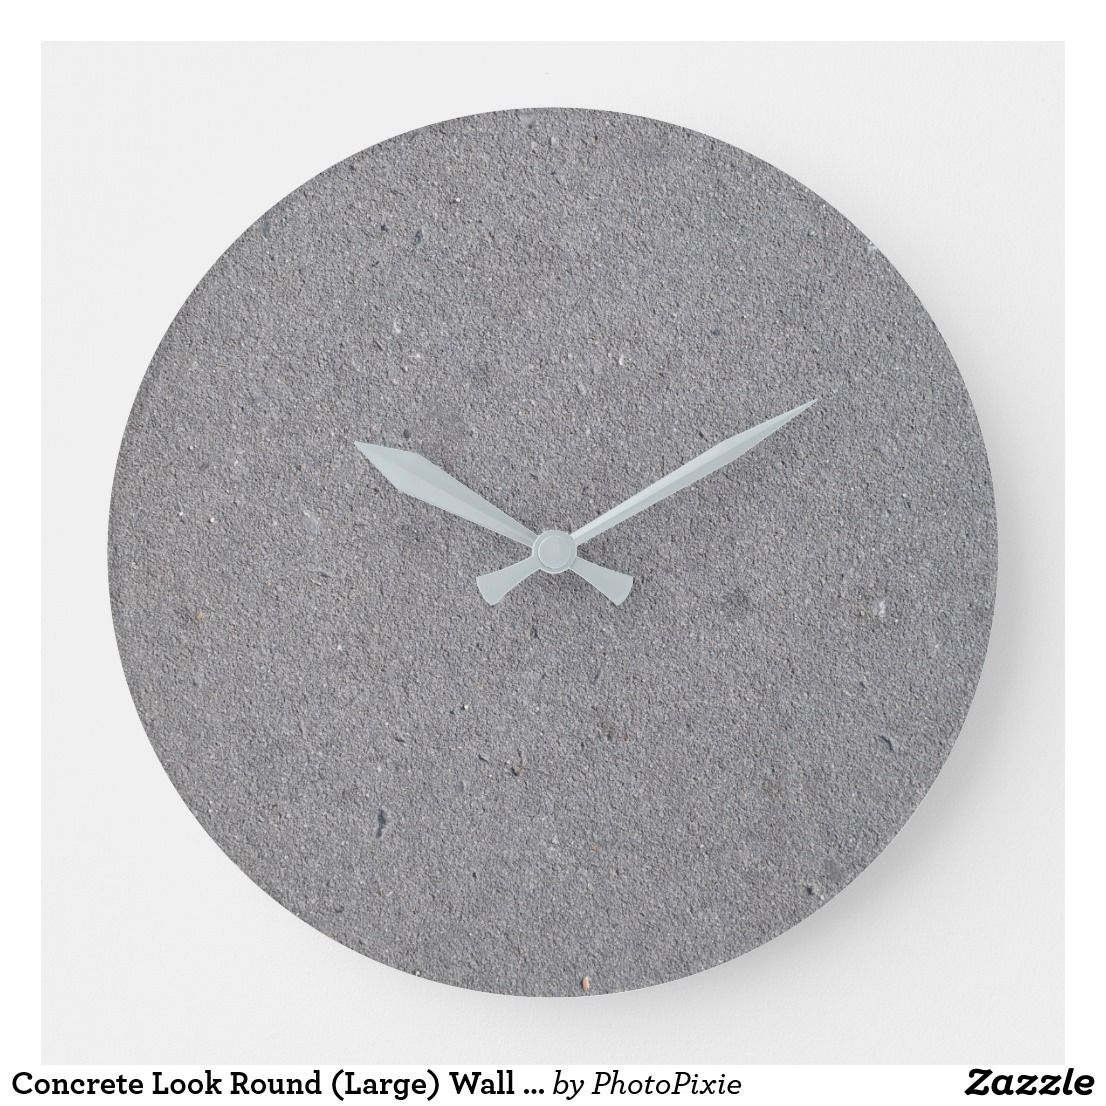 Concrete Look Round Large Wall Clock Zazzle Com In 2020 Large Wall Clock Wall Clock Clock